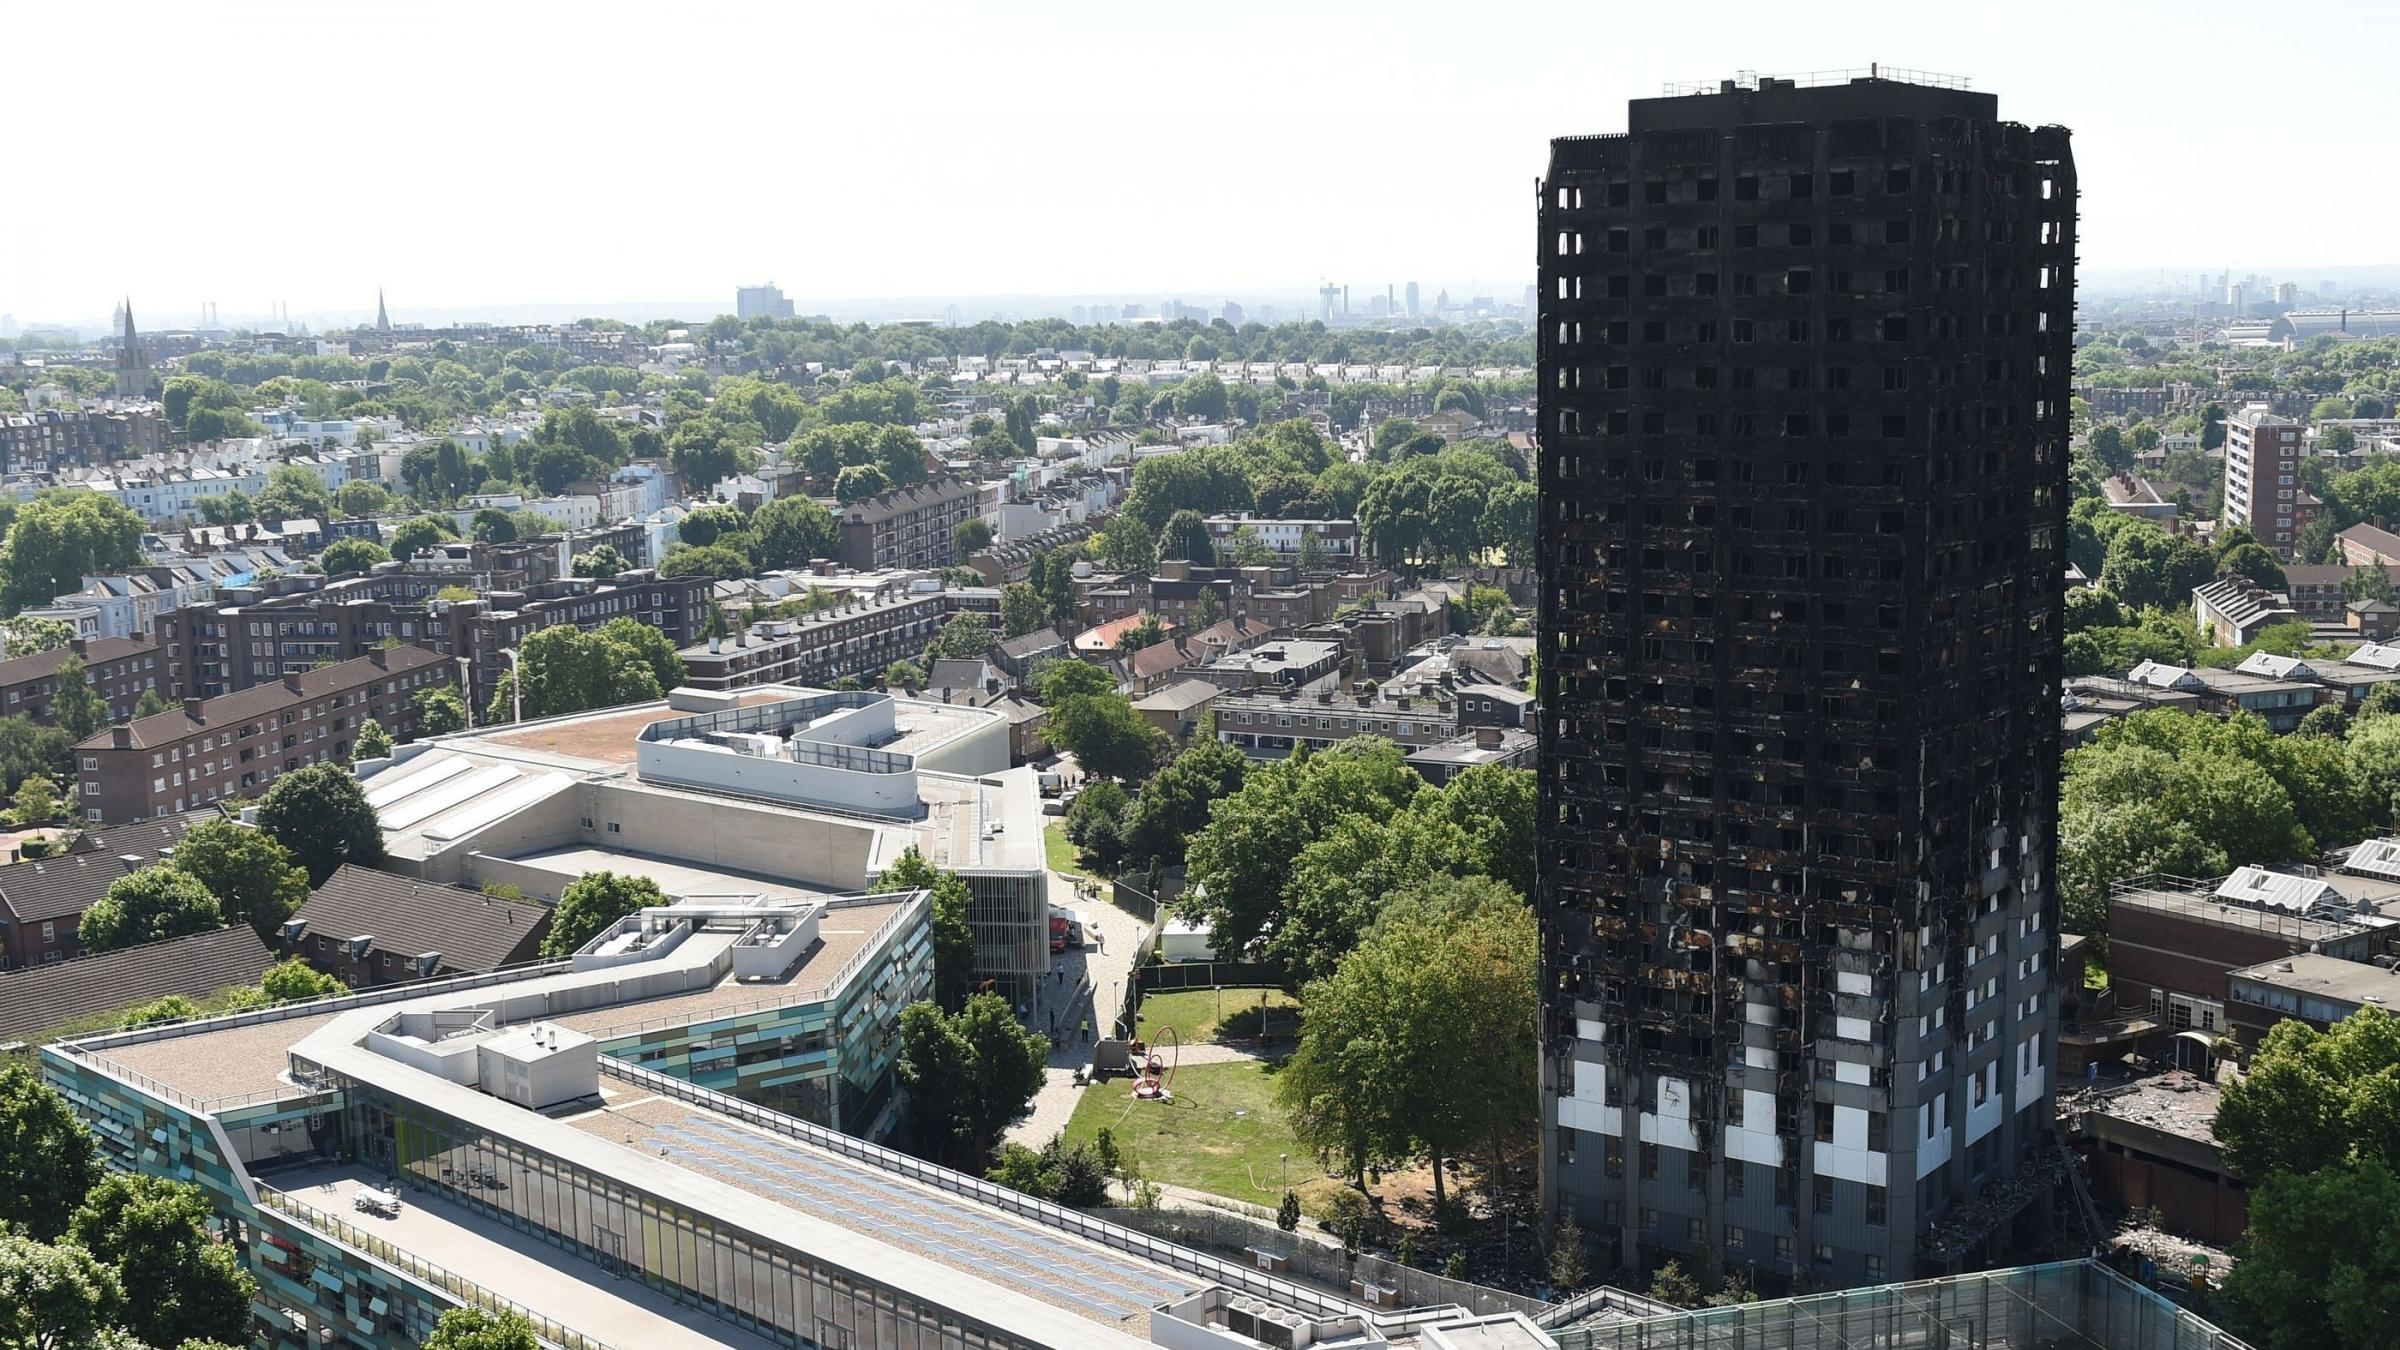 Theresa May: support for Grenfell fire victims was 'not good enough'